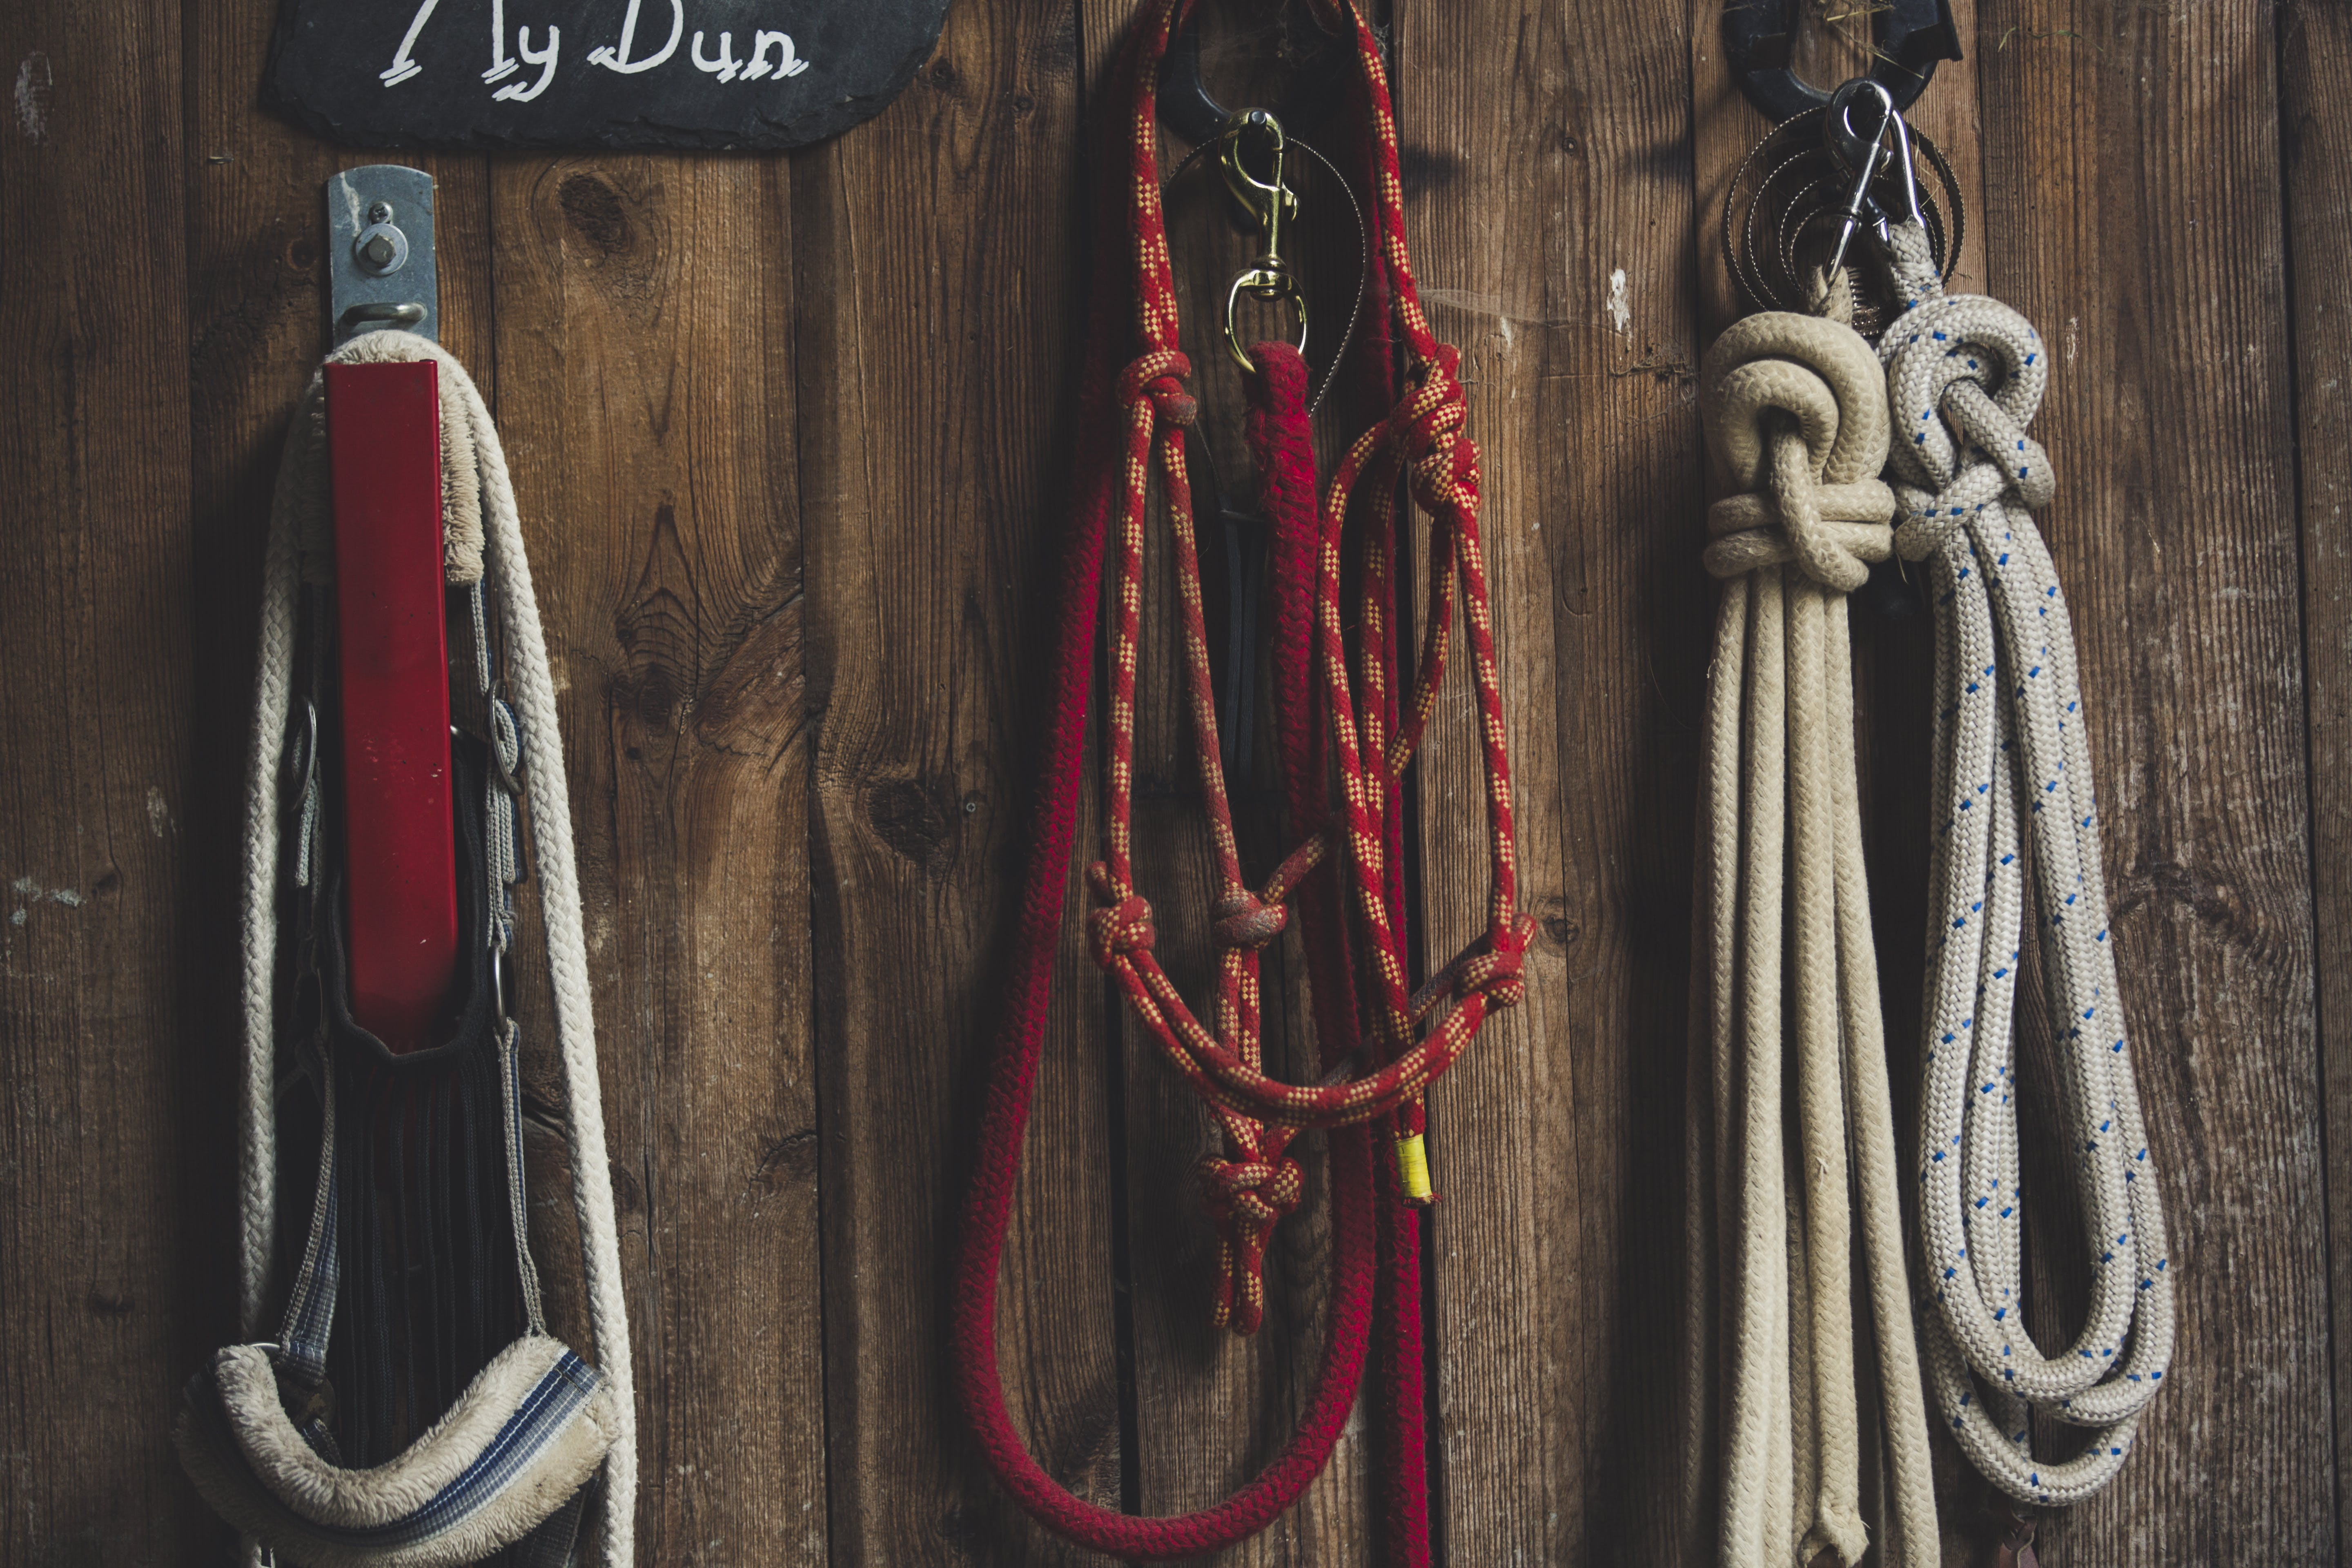 Four Ropes Hanged on Brown Board